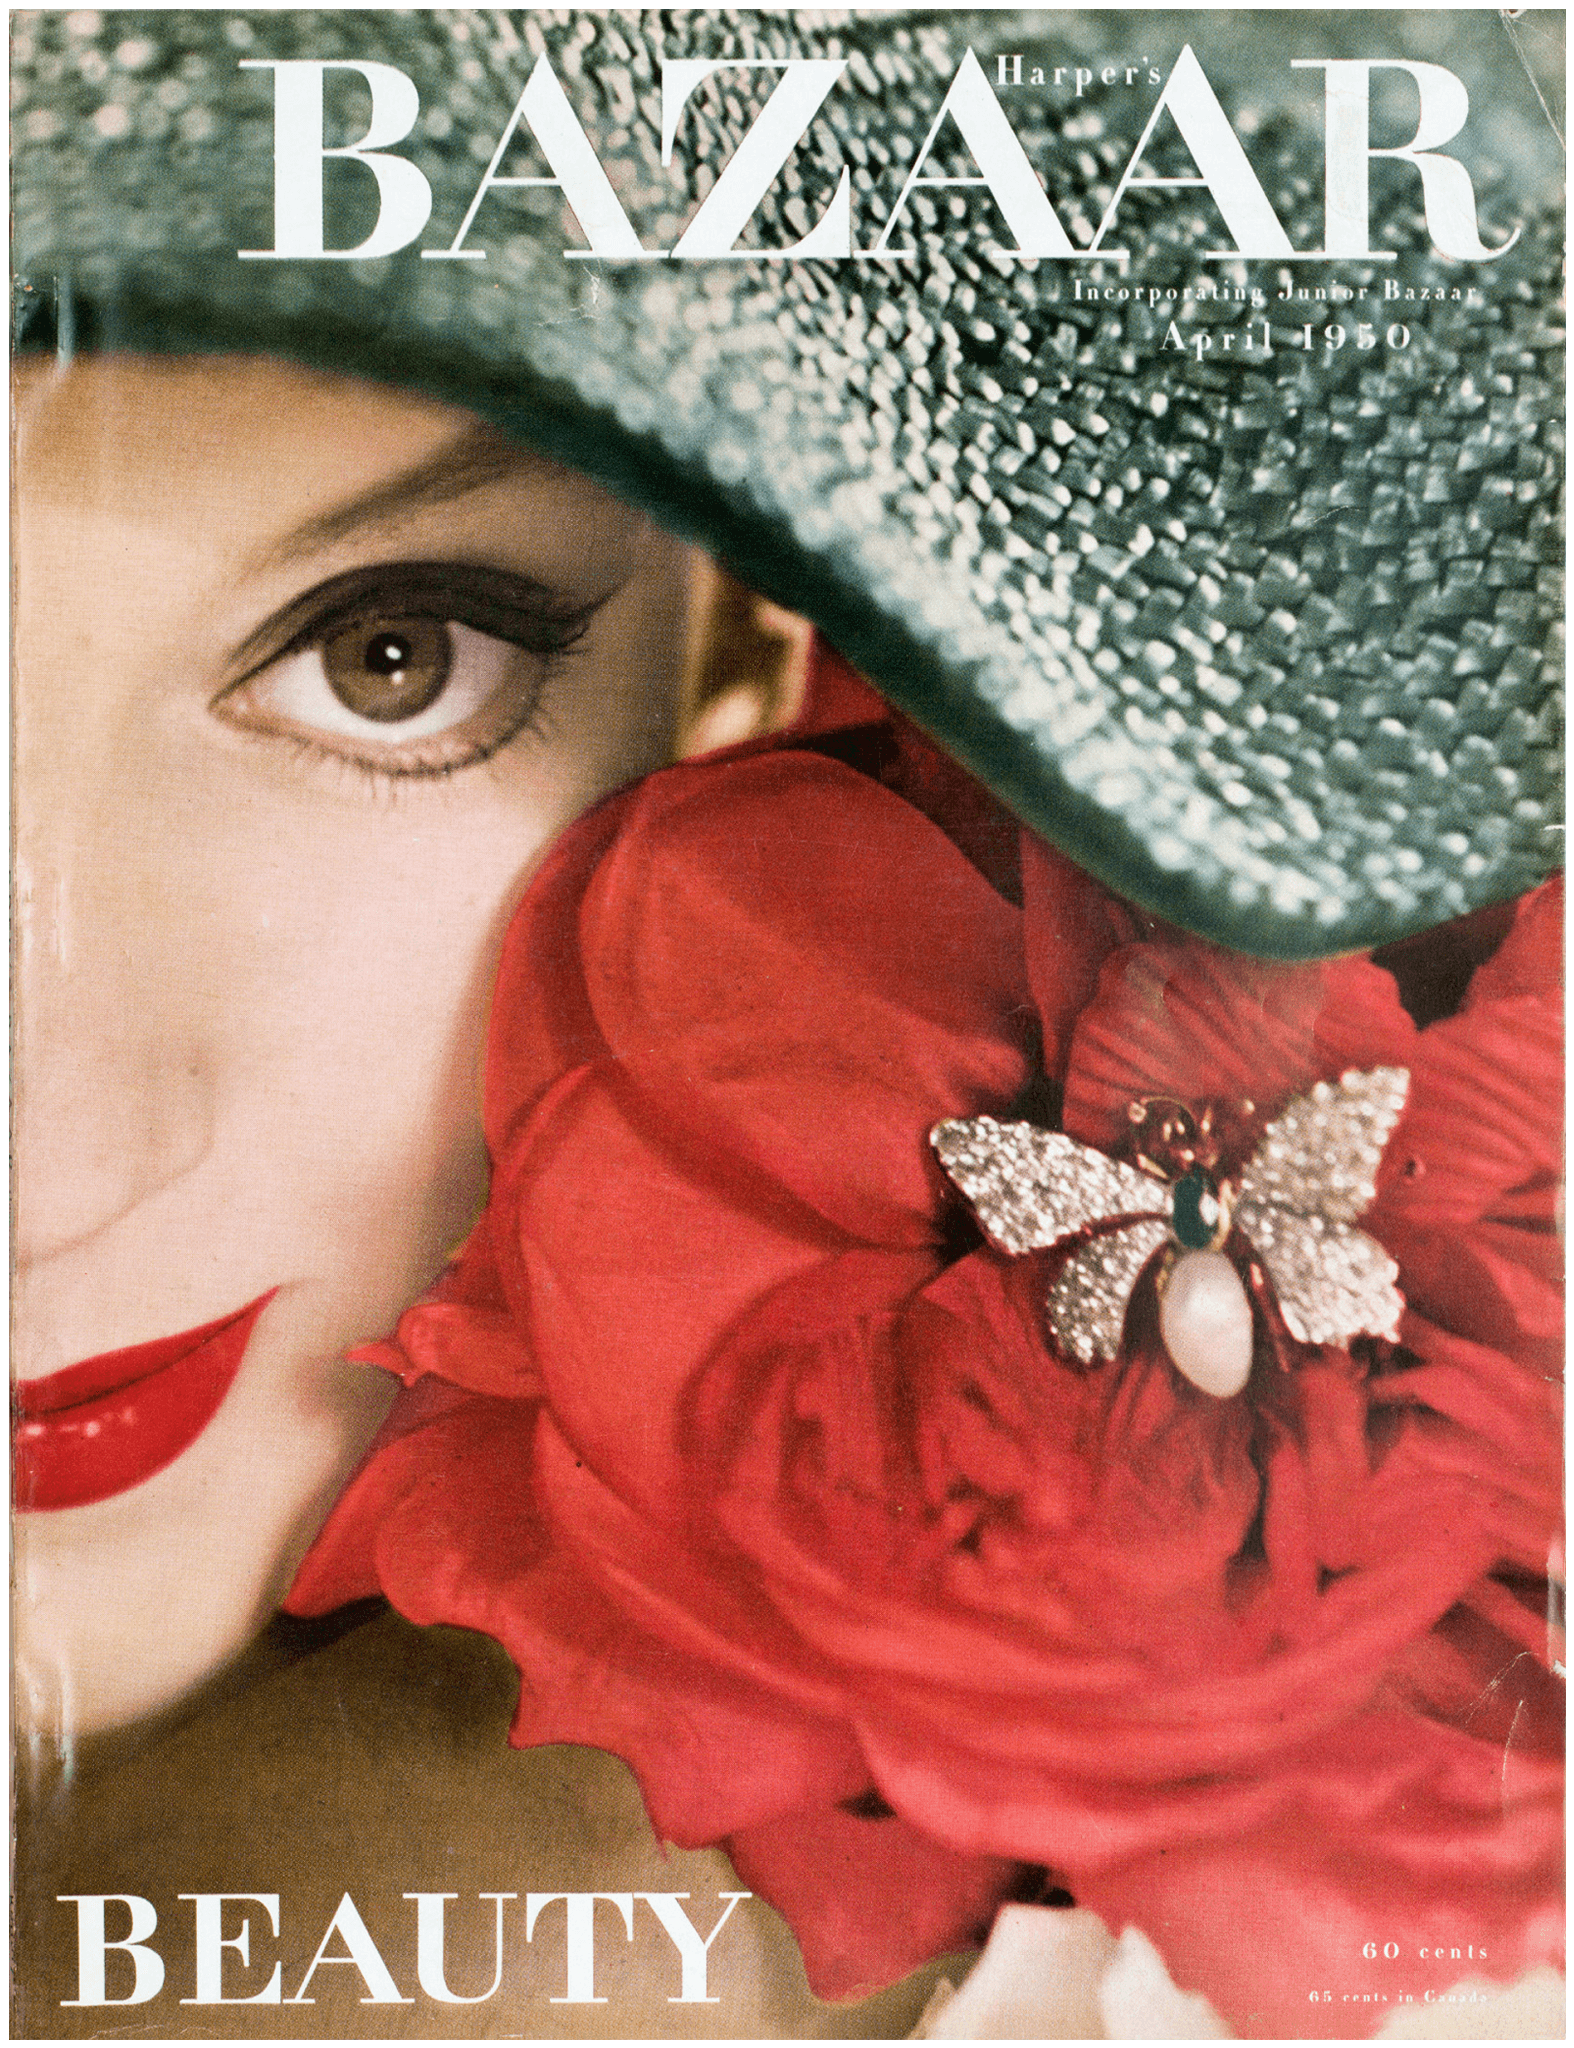 Harper's Bazaar,  April 1950